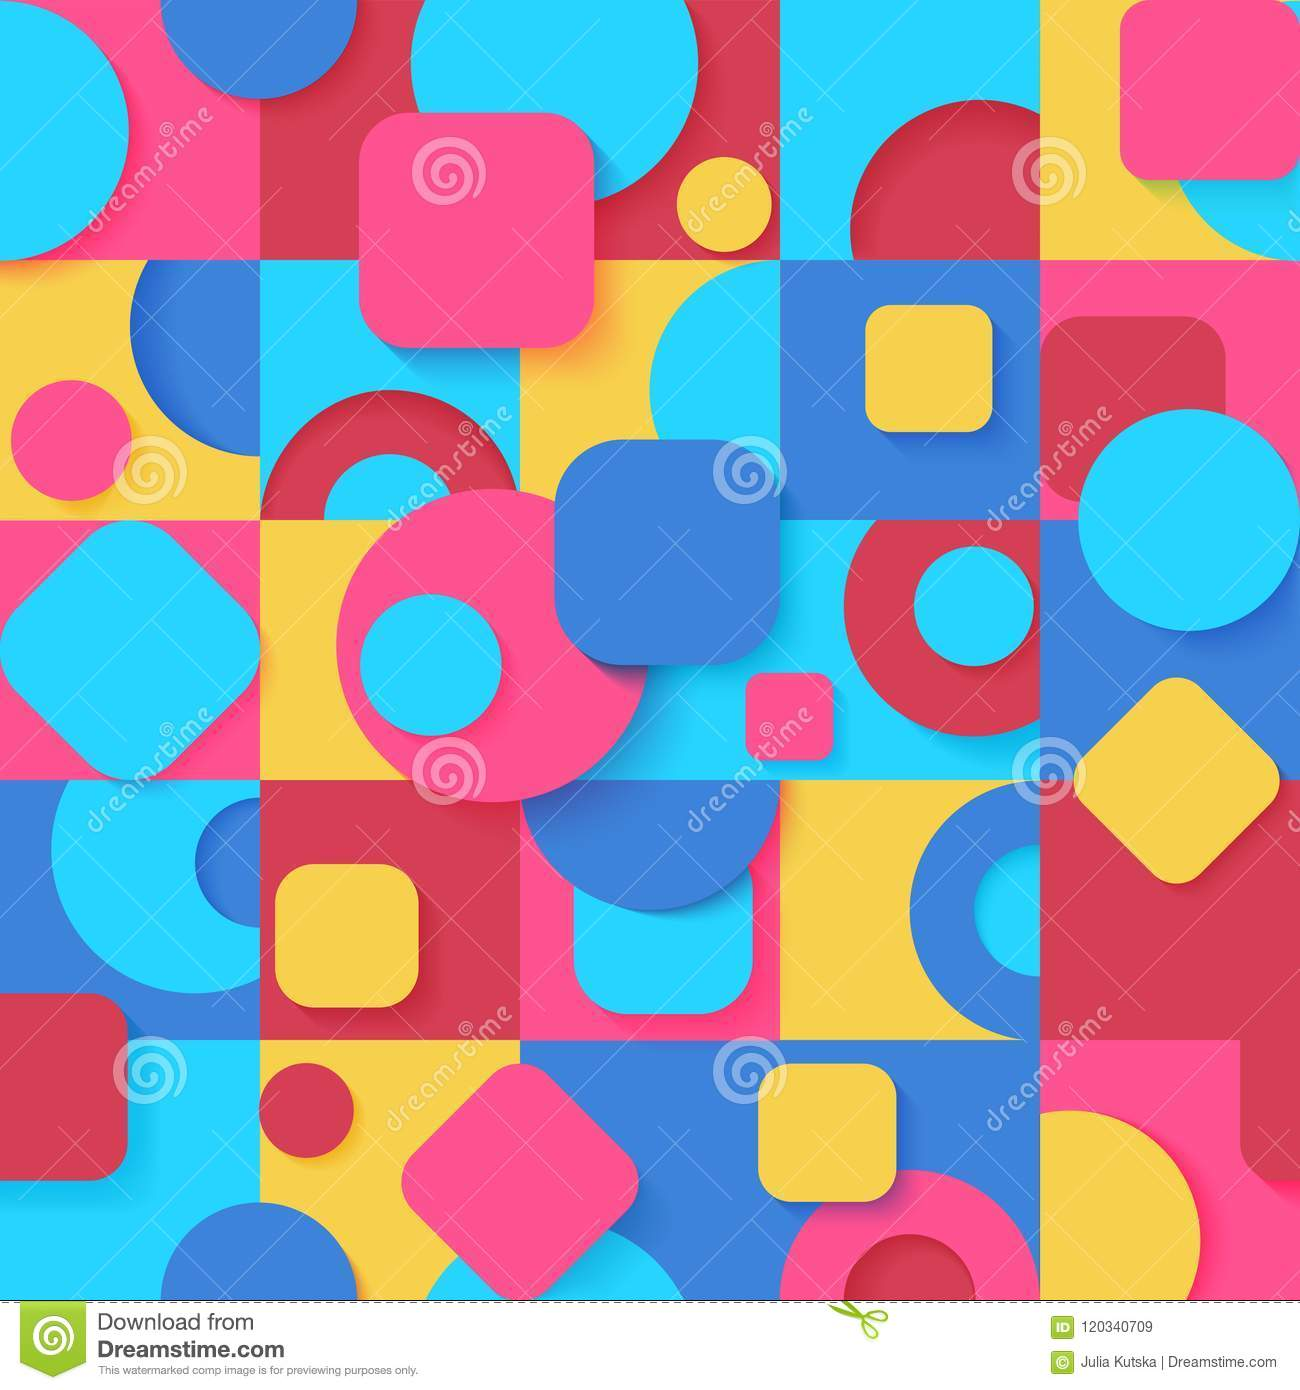 seamless pop art colorful abstract geometric shapes pattern. bright